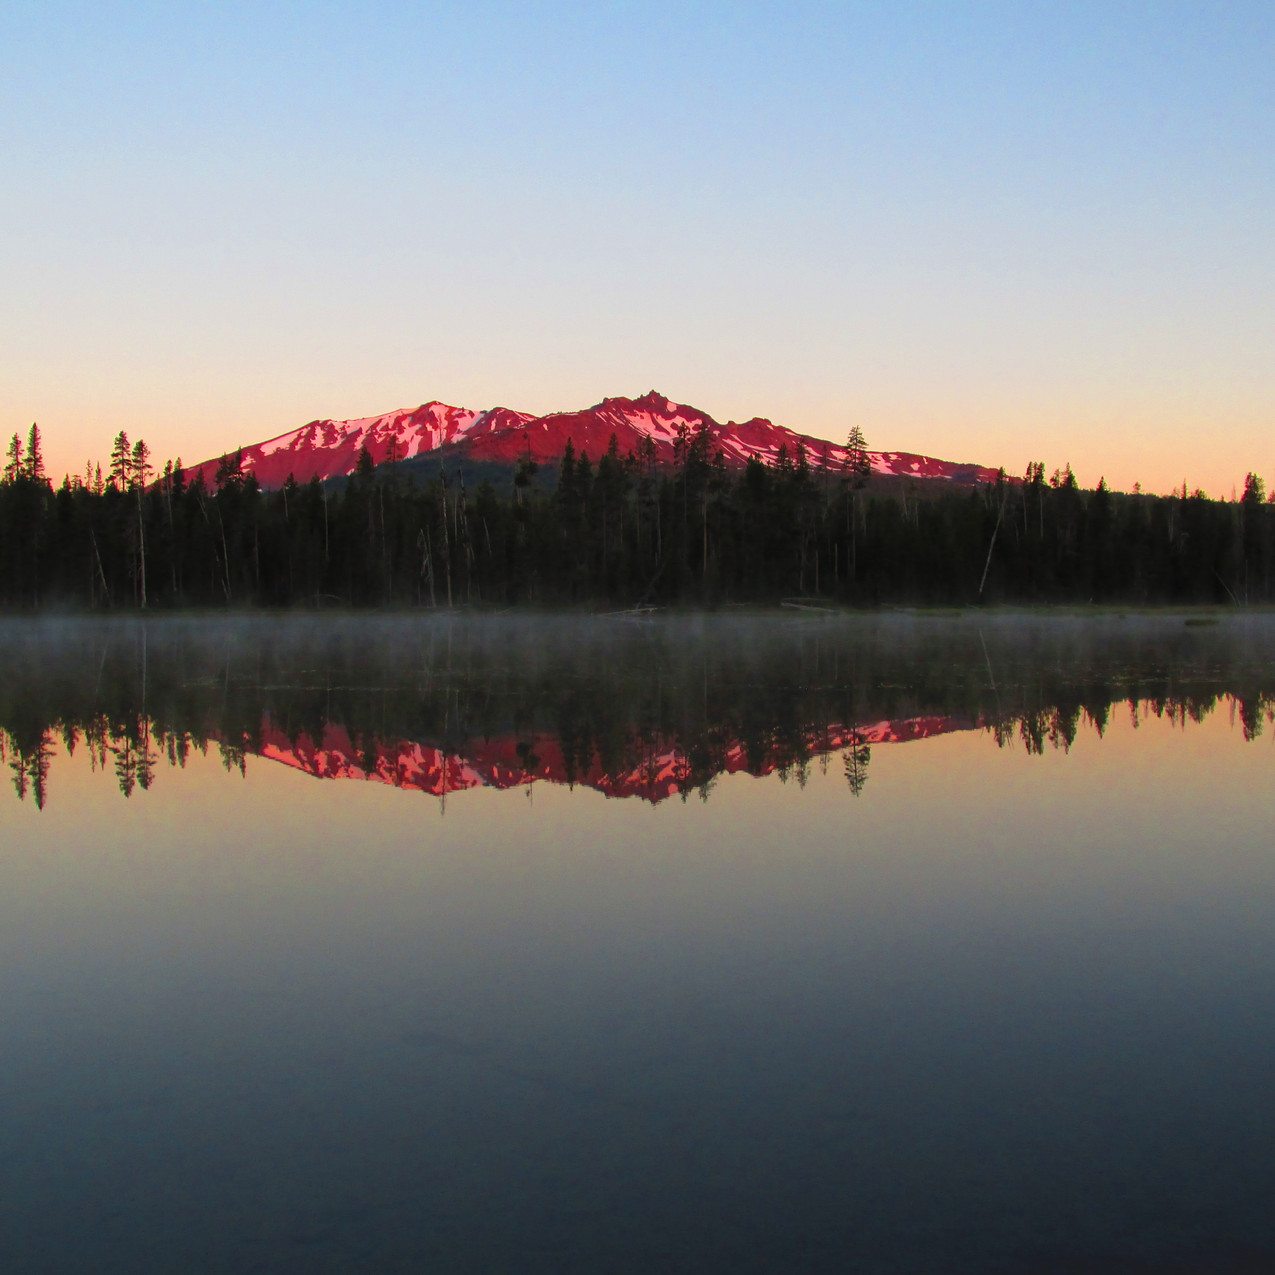 I don't remember where I took this picture, but loved the reflections and alpenglow.